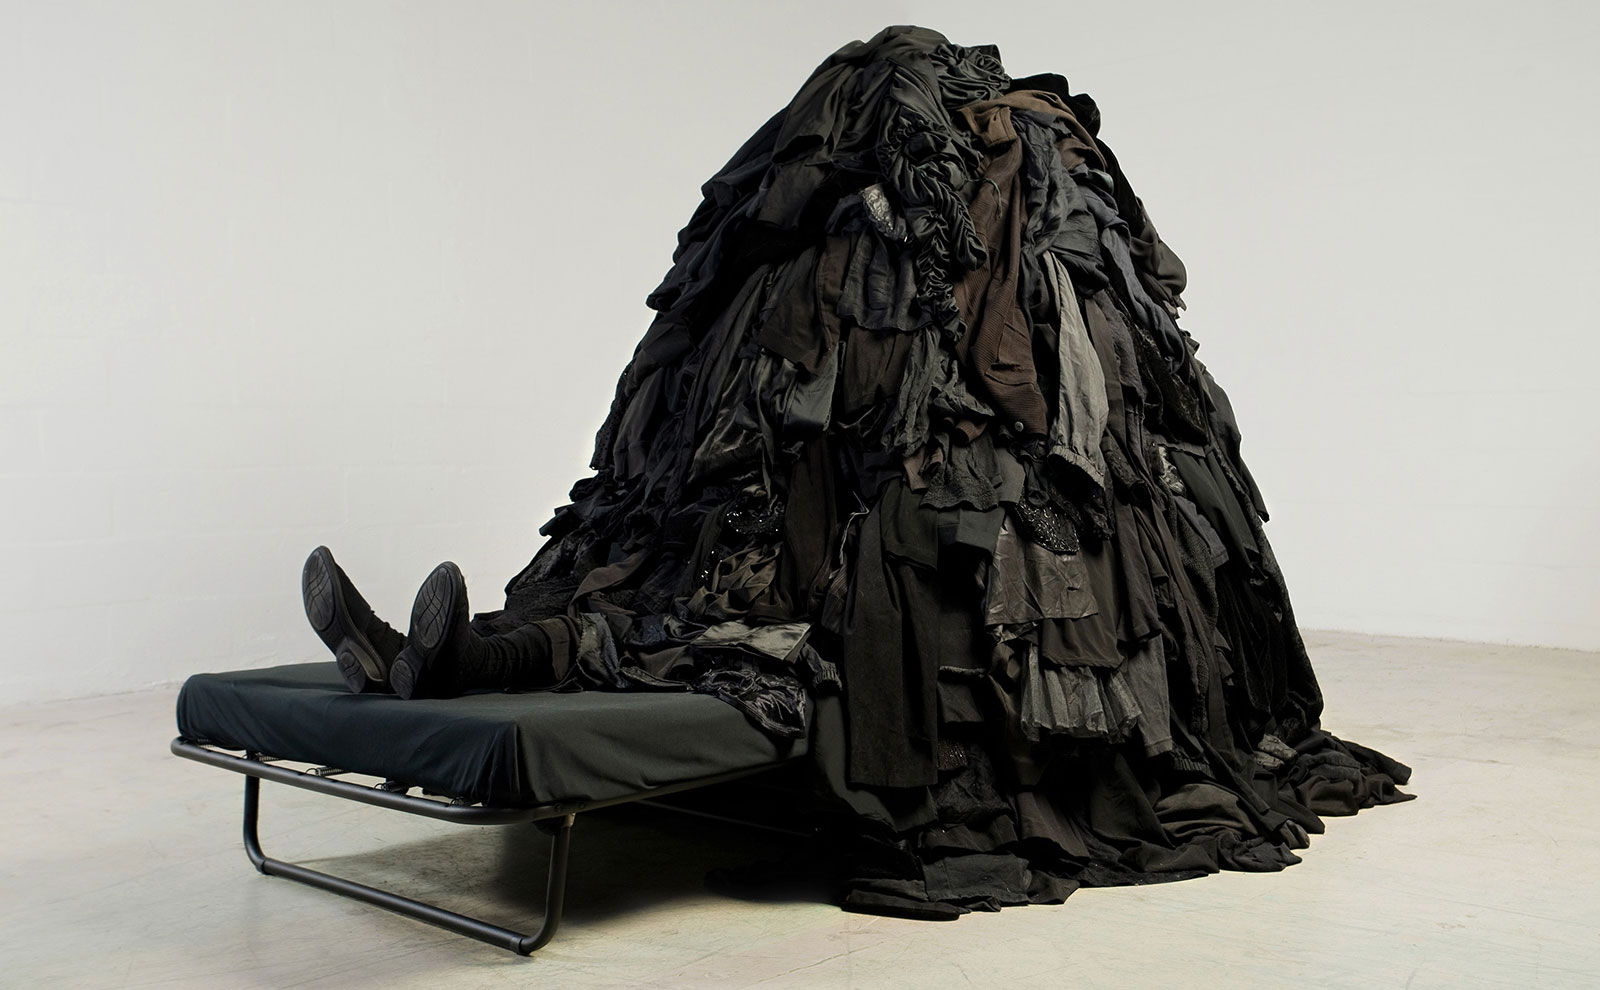 figurative sculpture under pile of discarded textiles